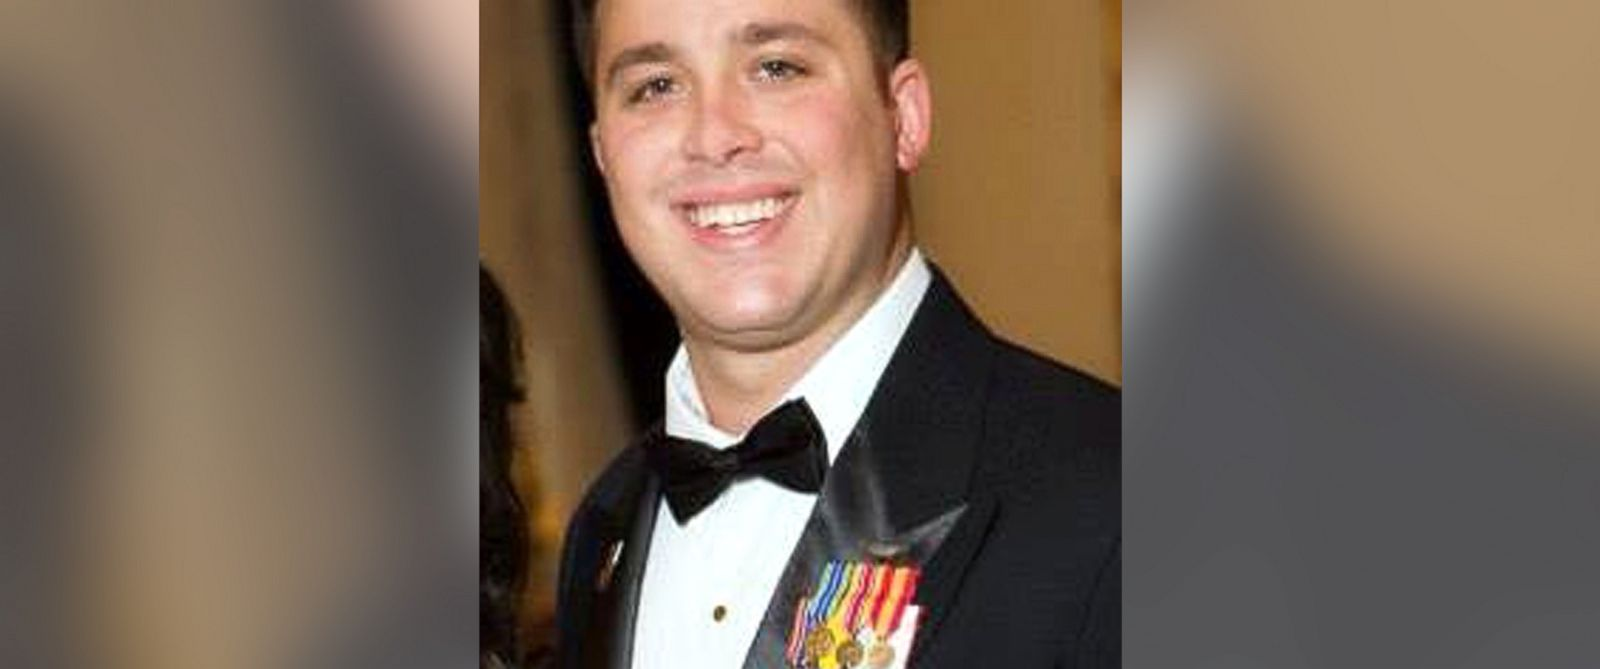 PHOTO: Army Staff Sgt. Thomas Florich of Fairfax County, Va., was one of four Louisiana Army National Guardsmen killed in a UH-60M Black Hawk helicopter crash off the coast of Florida, March 10, 2015.